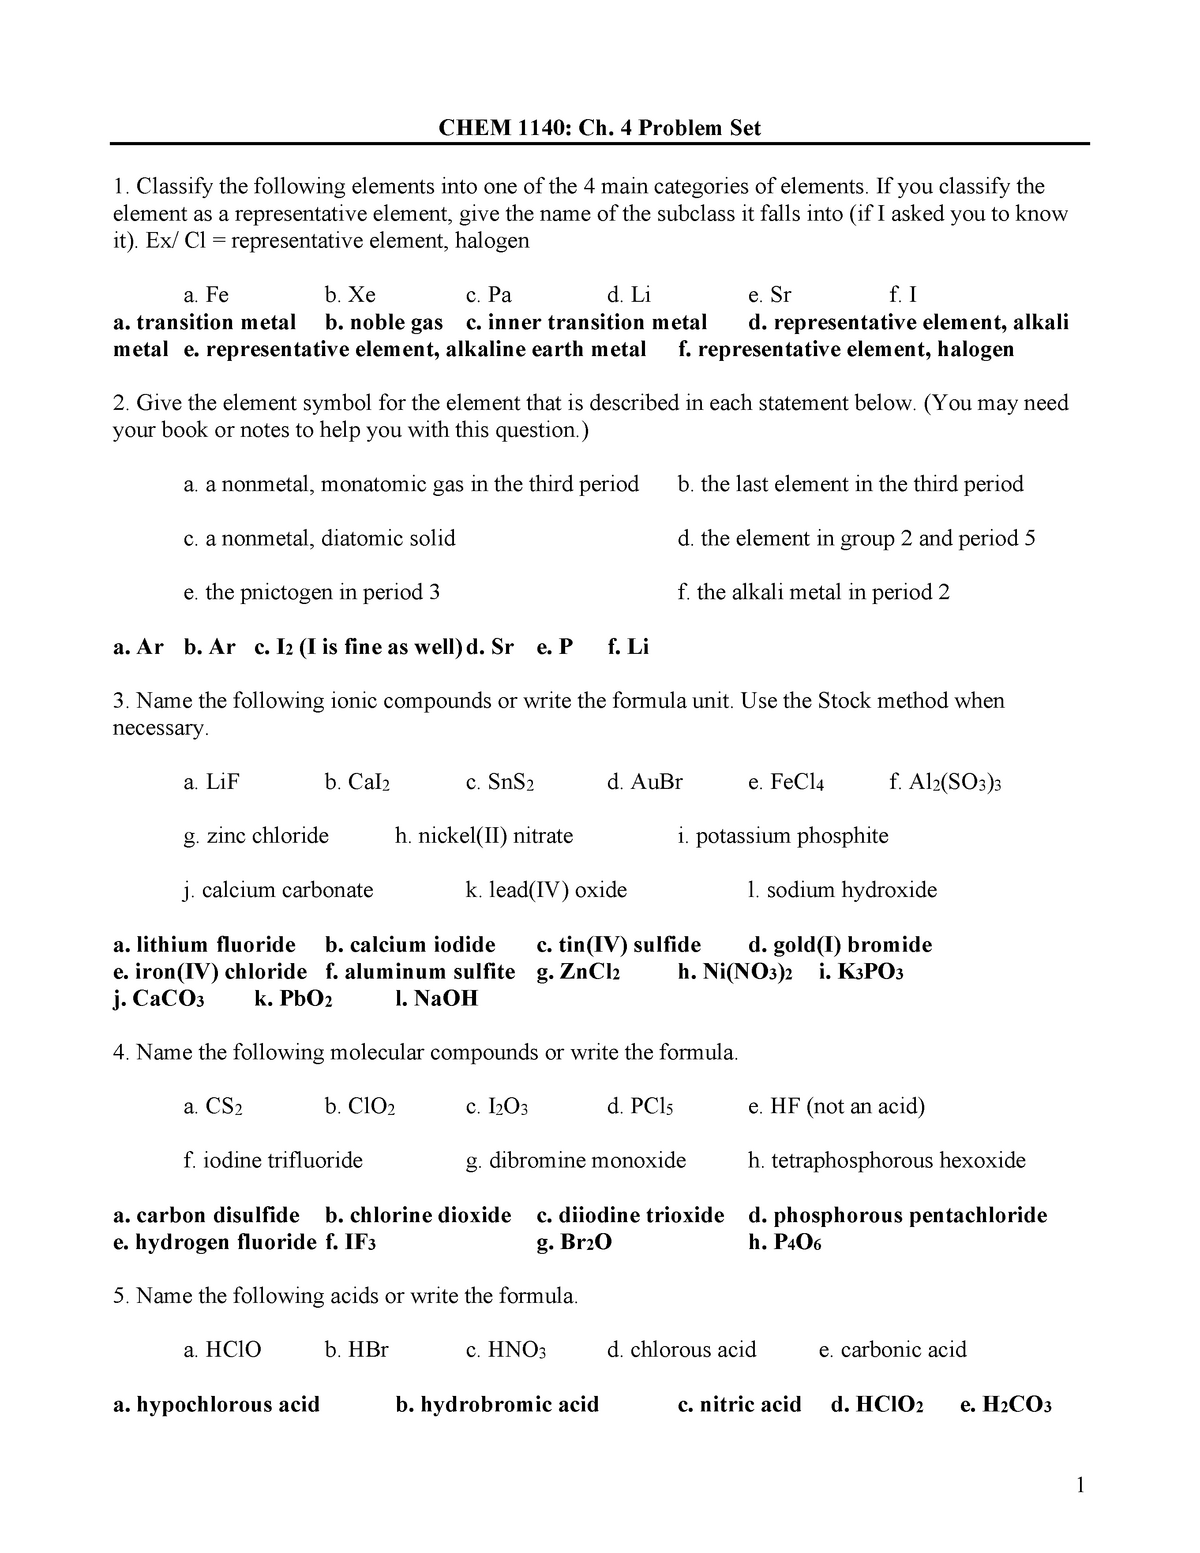 Chapter 4 - The Periodic Table and Chemical Nomenclature